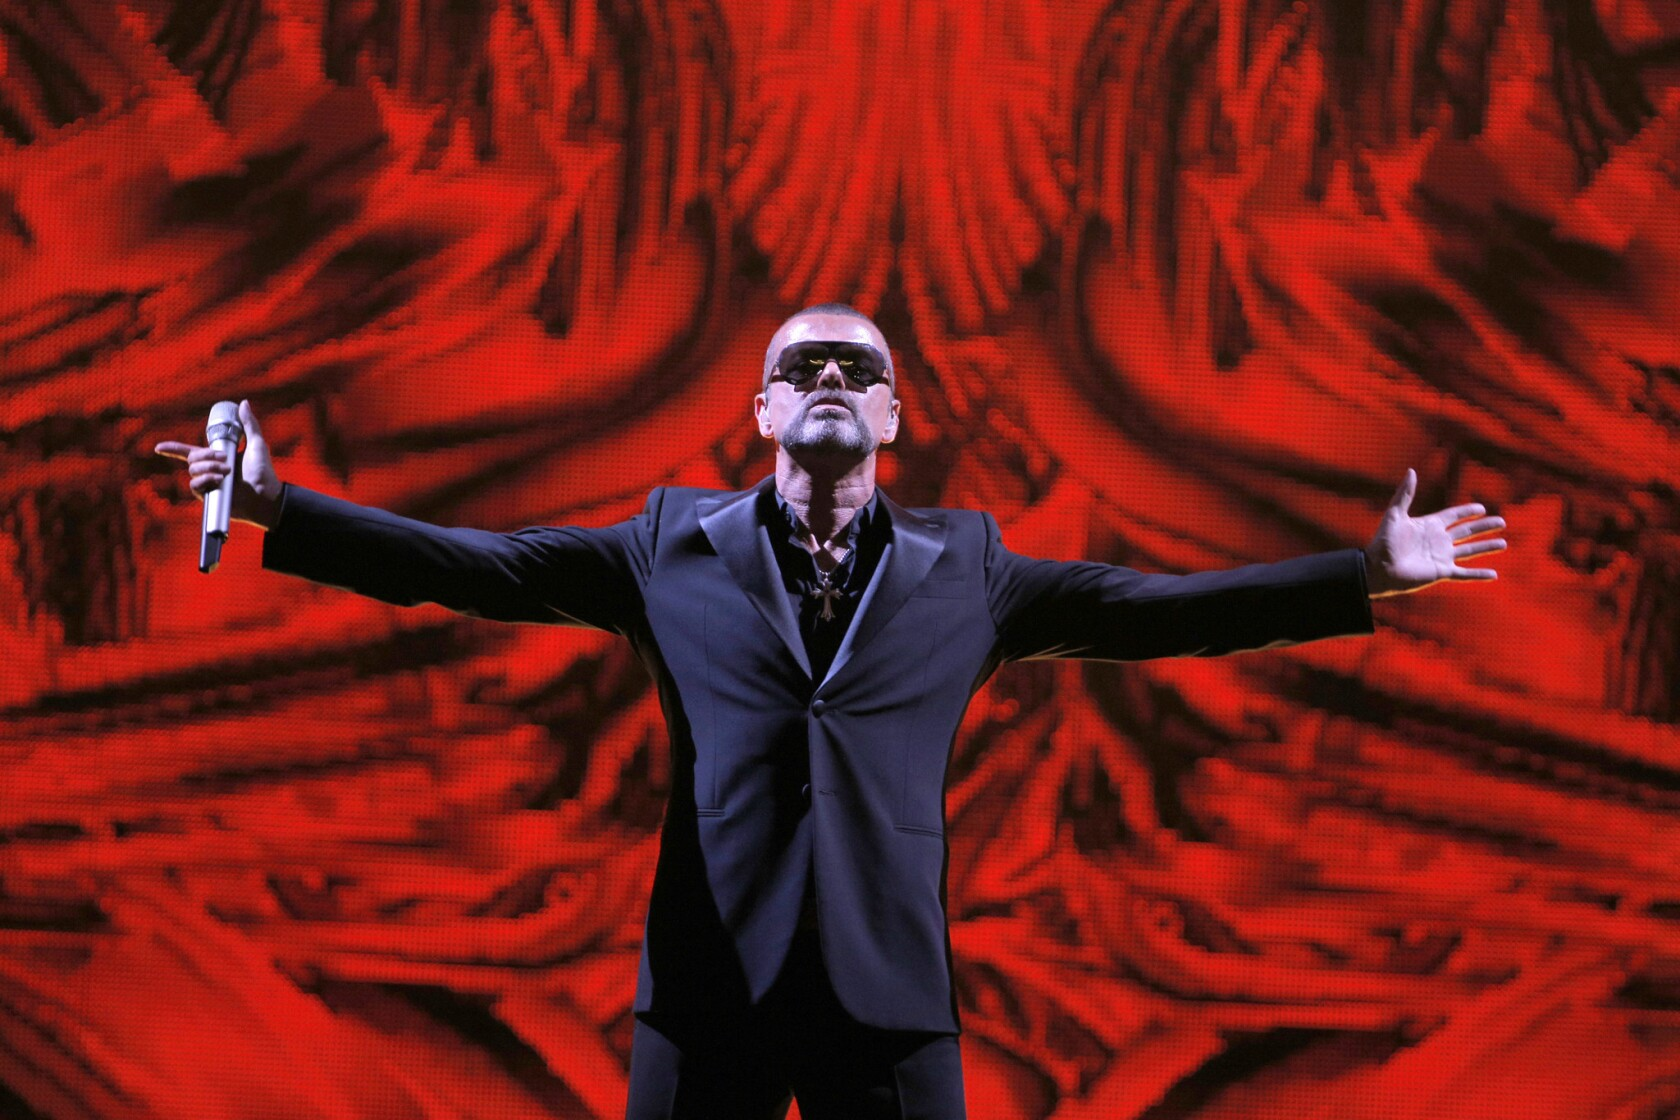 GEORGE MICHAEL AWESOME POP LEGEND ICONIC CANVAS ART PRINT PICTURE Art Williams